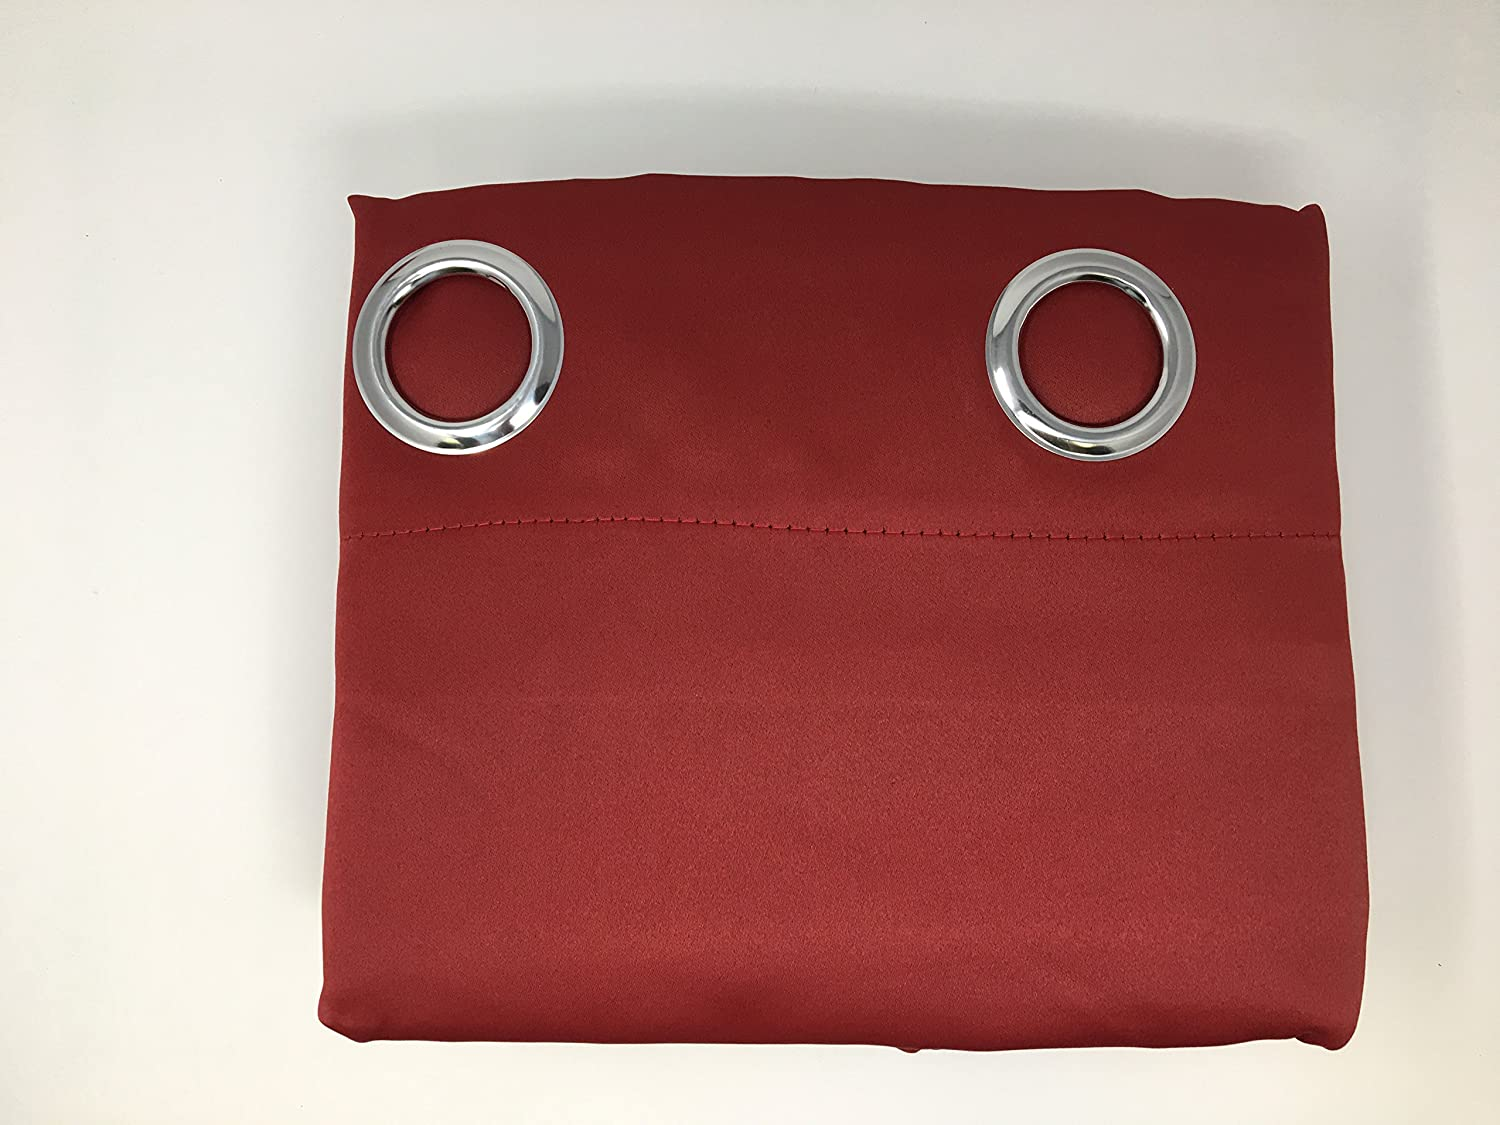 All American Collection New 2 Panel Curtain Set Solid Machine Woven Blackout with 8 Grommets Red Burgundy